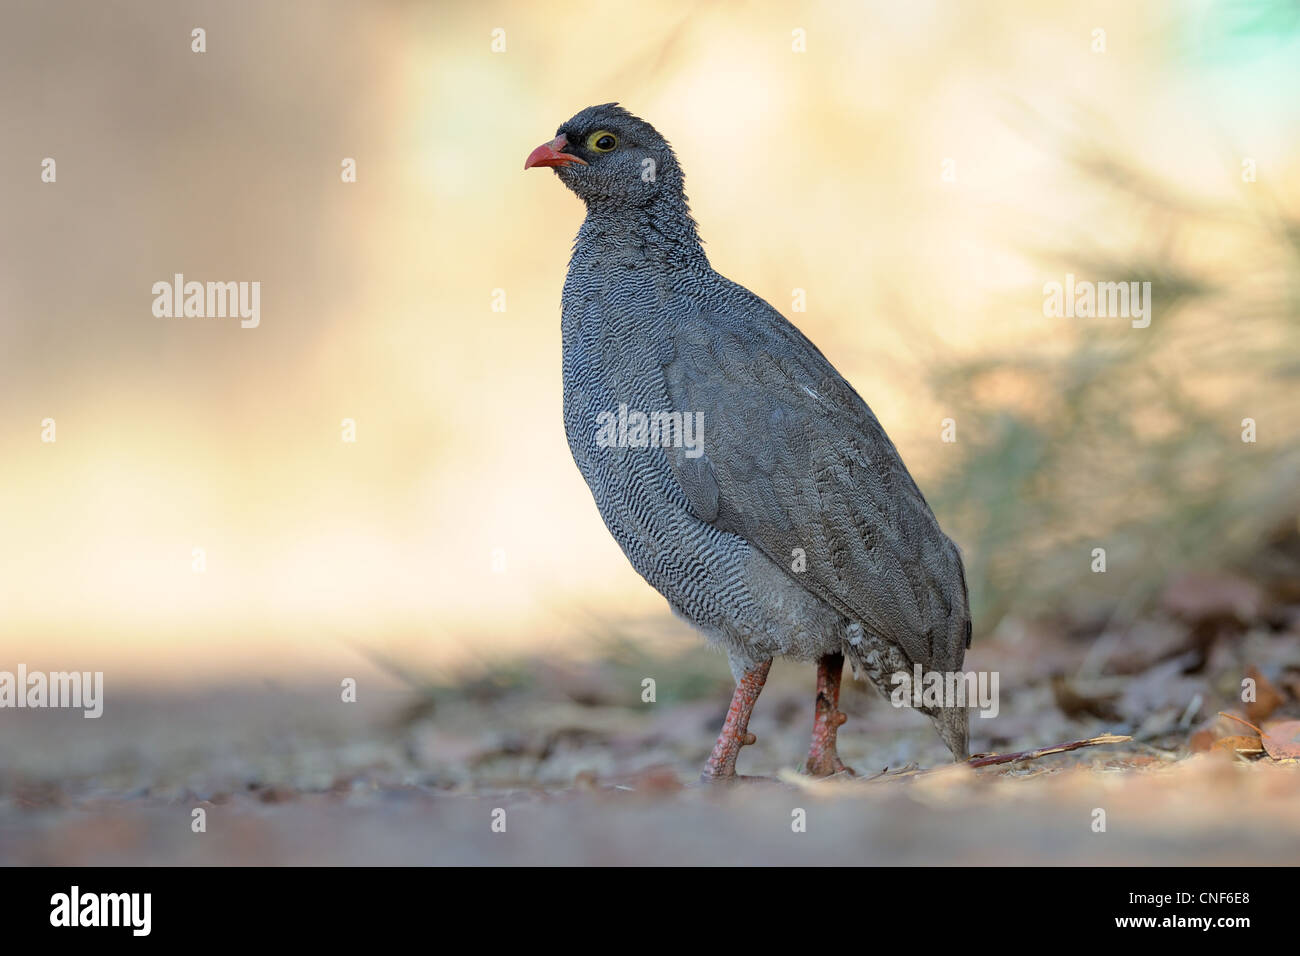 Red Billed Spurfowl standing on ground. - Stock Image